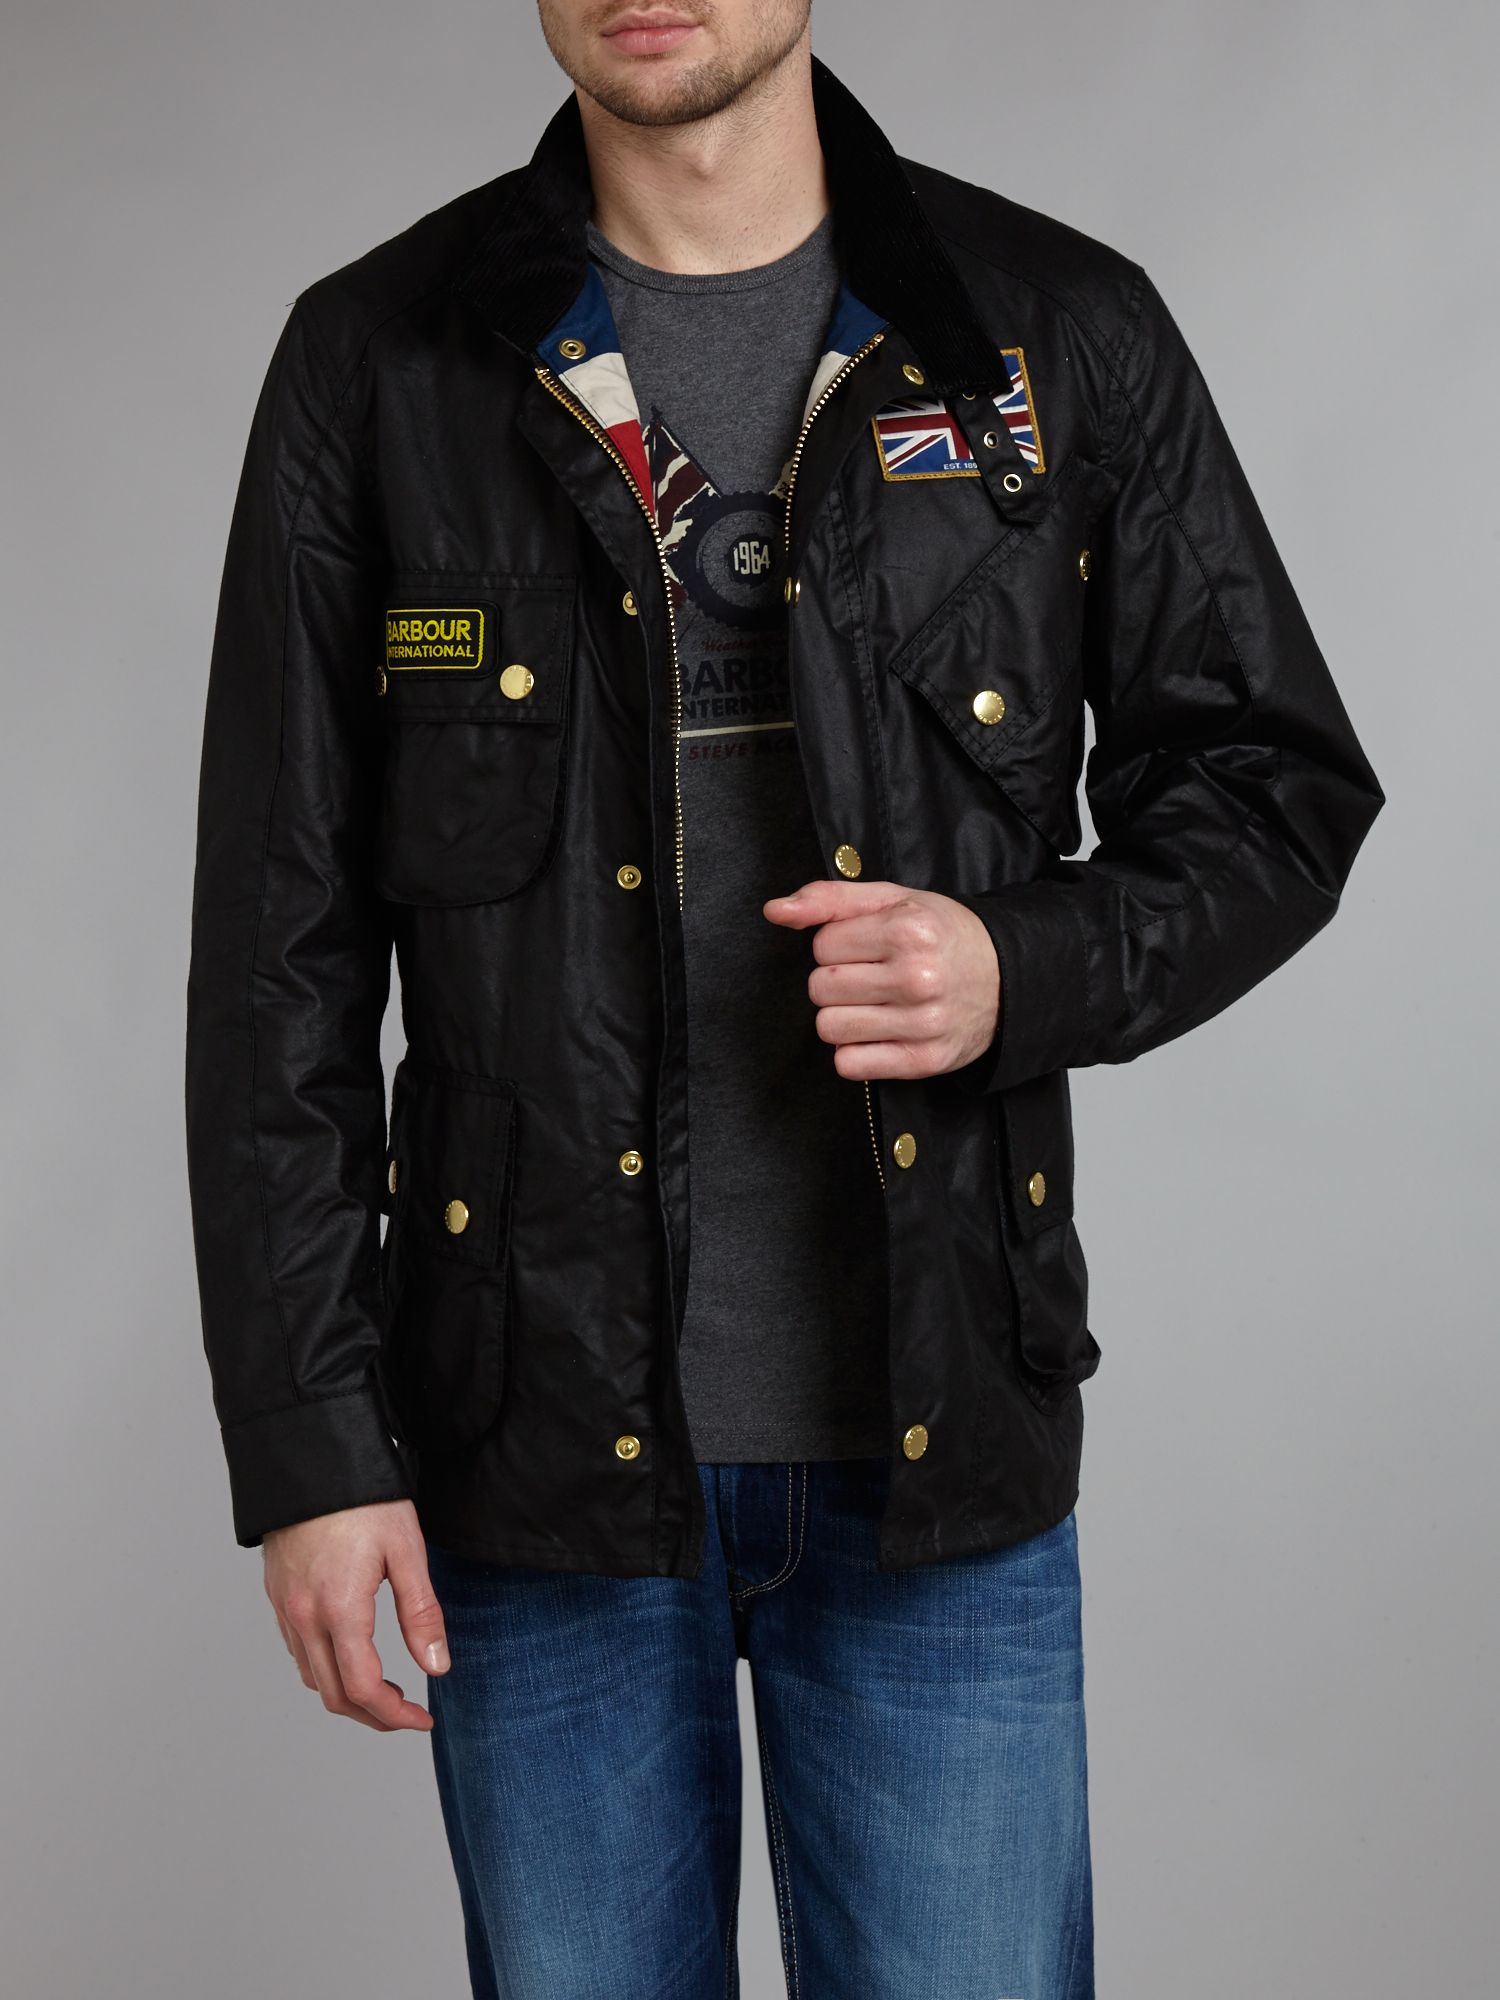 Barbour Union Jack Lined Motorcycle Jacket In Black For